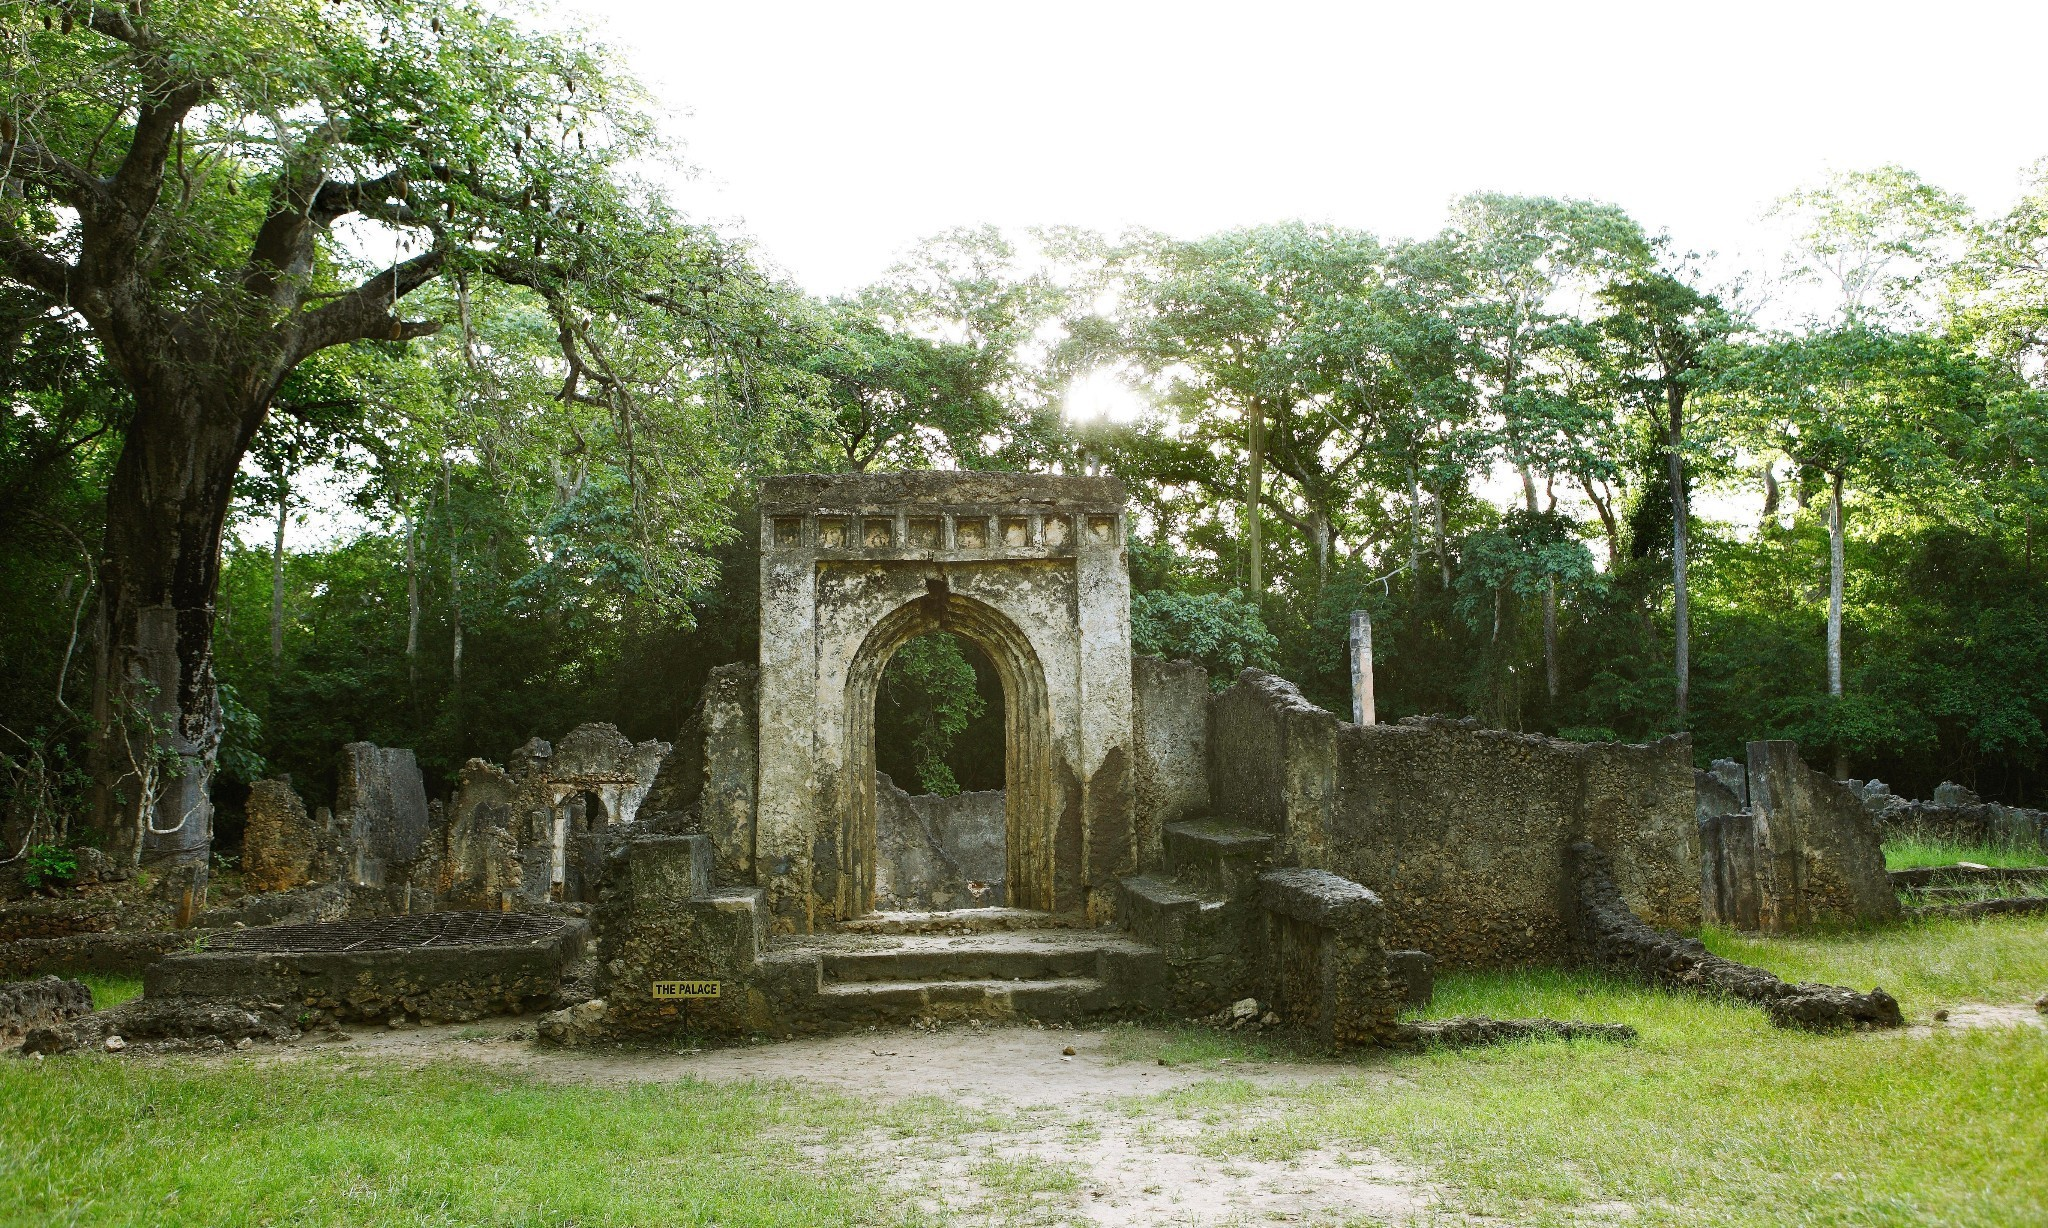 Five lost cities of the world